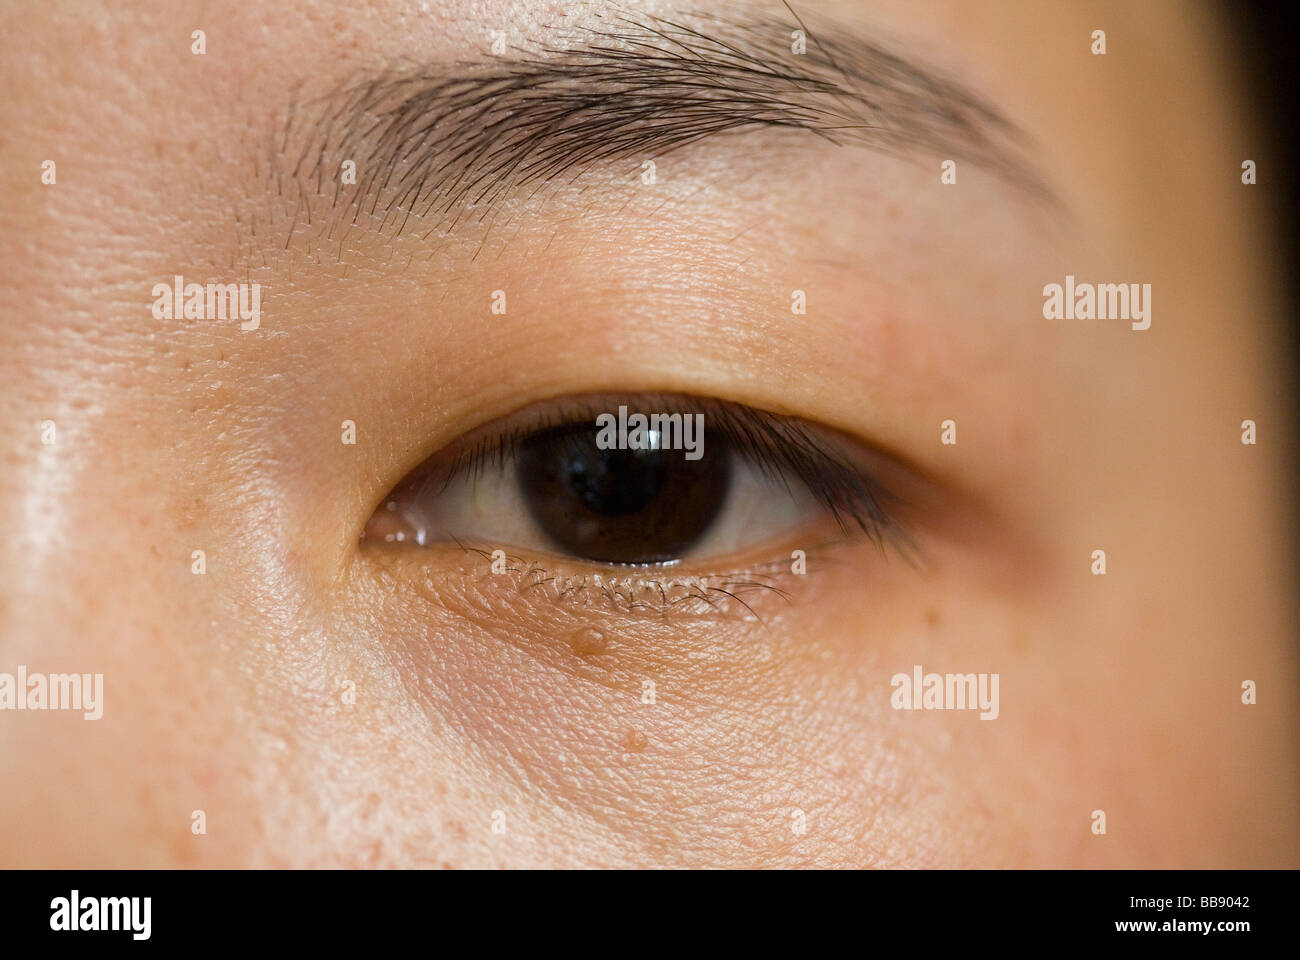 Zhao Yan, 27, a nurse, is about to have a plastic surgery operation to give her double eyelids. - Stock Image